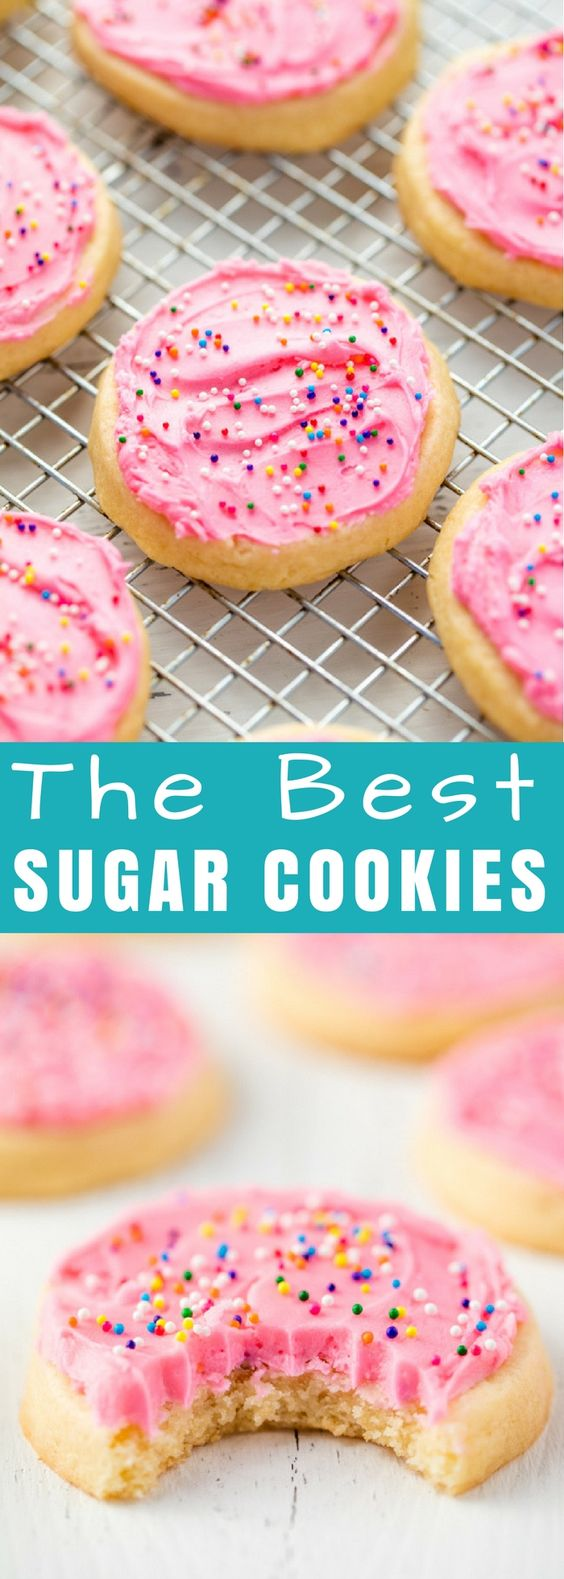 PERFECTLY SOFT SUGAR COOKIE RECIPE